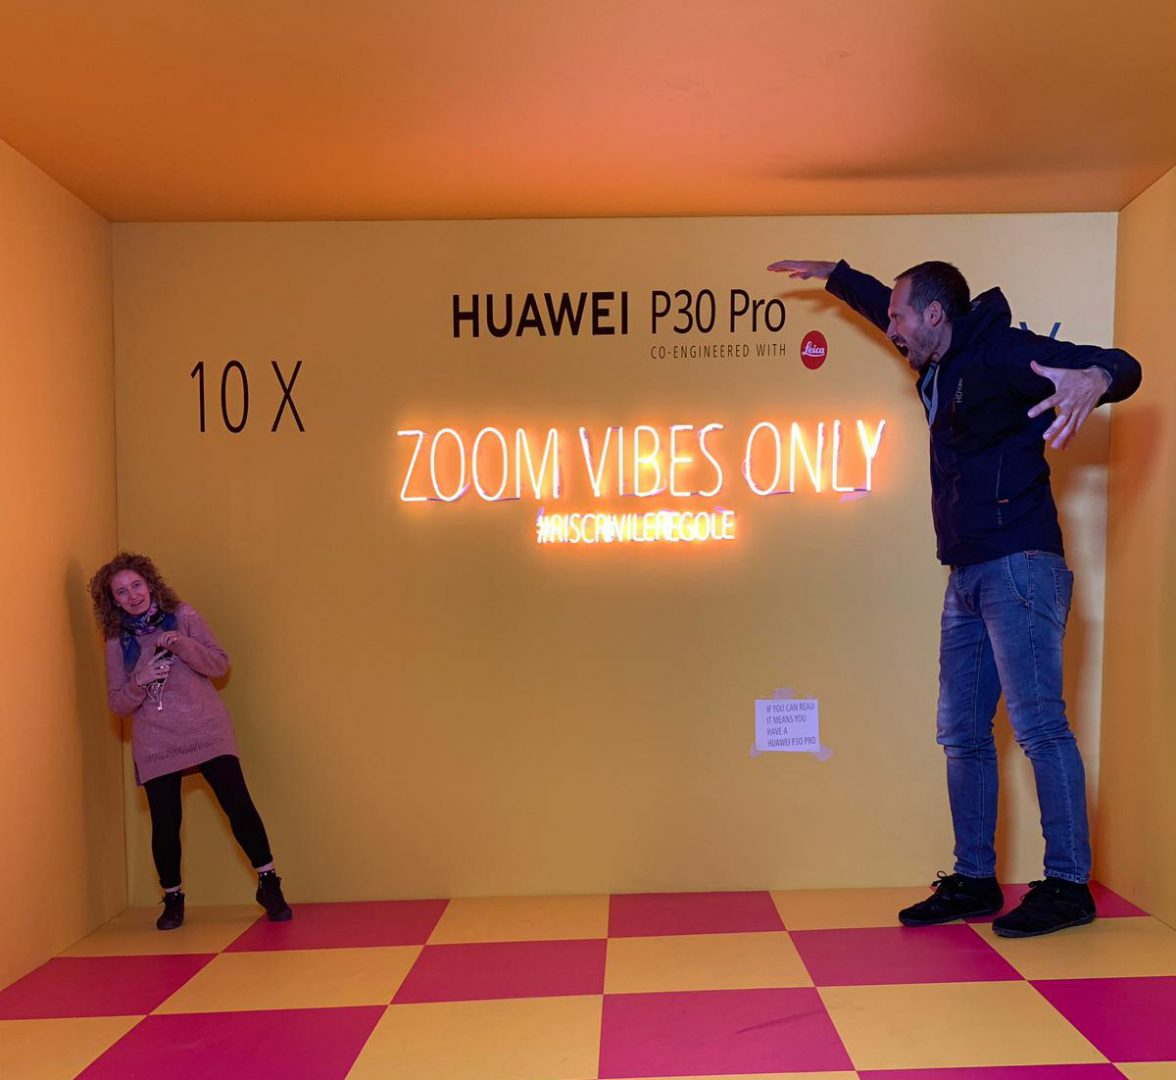 LFM Group per Huawei 2019 - Ames room for playful / sensory effects for IG photo